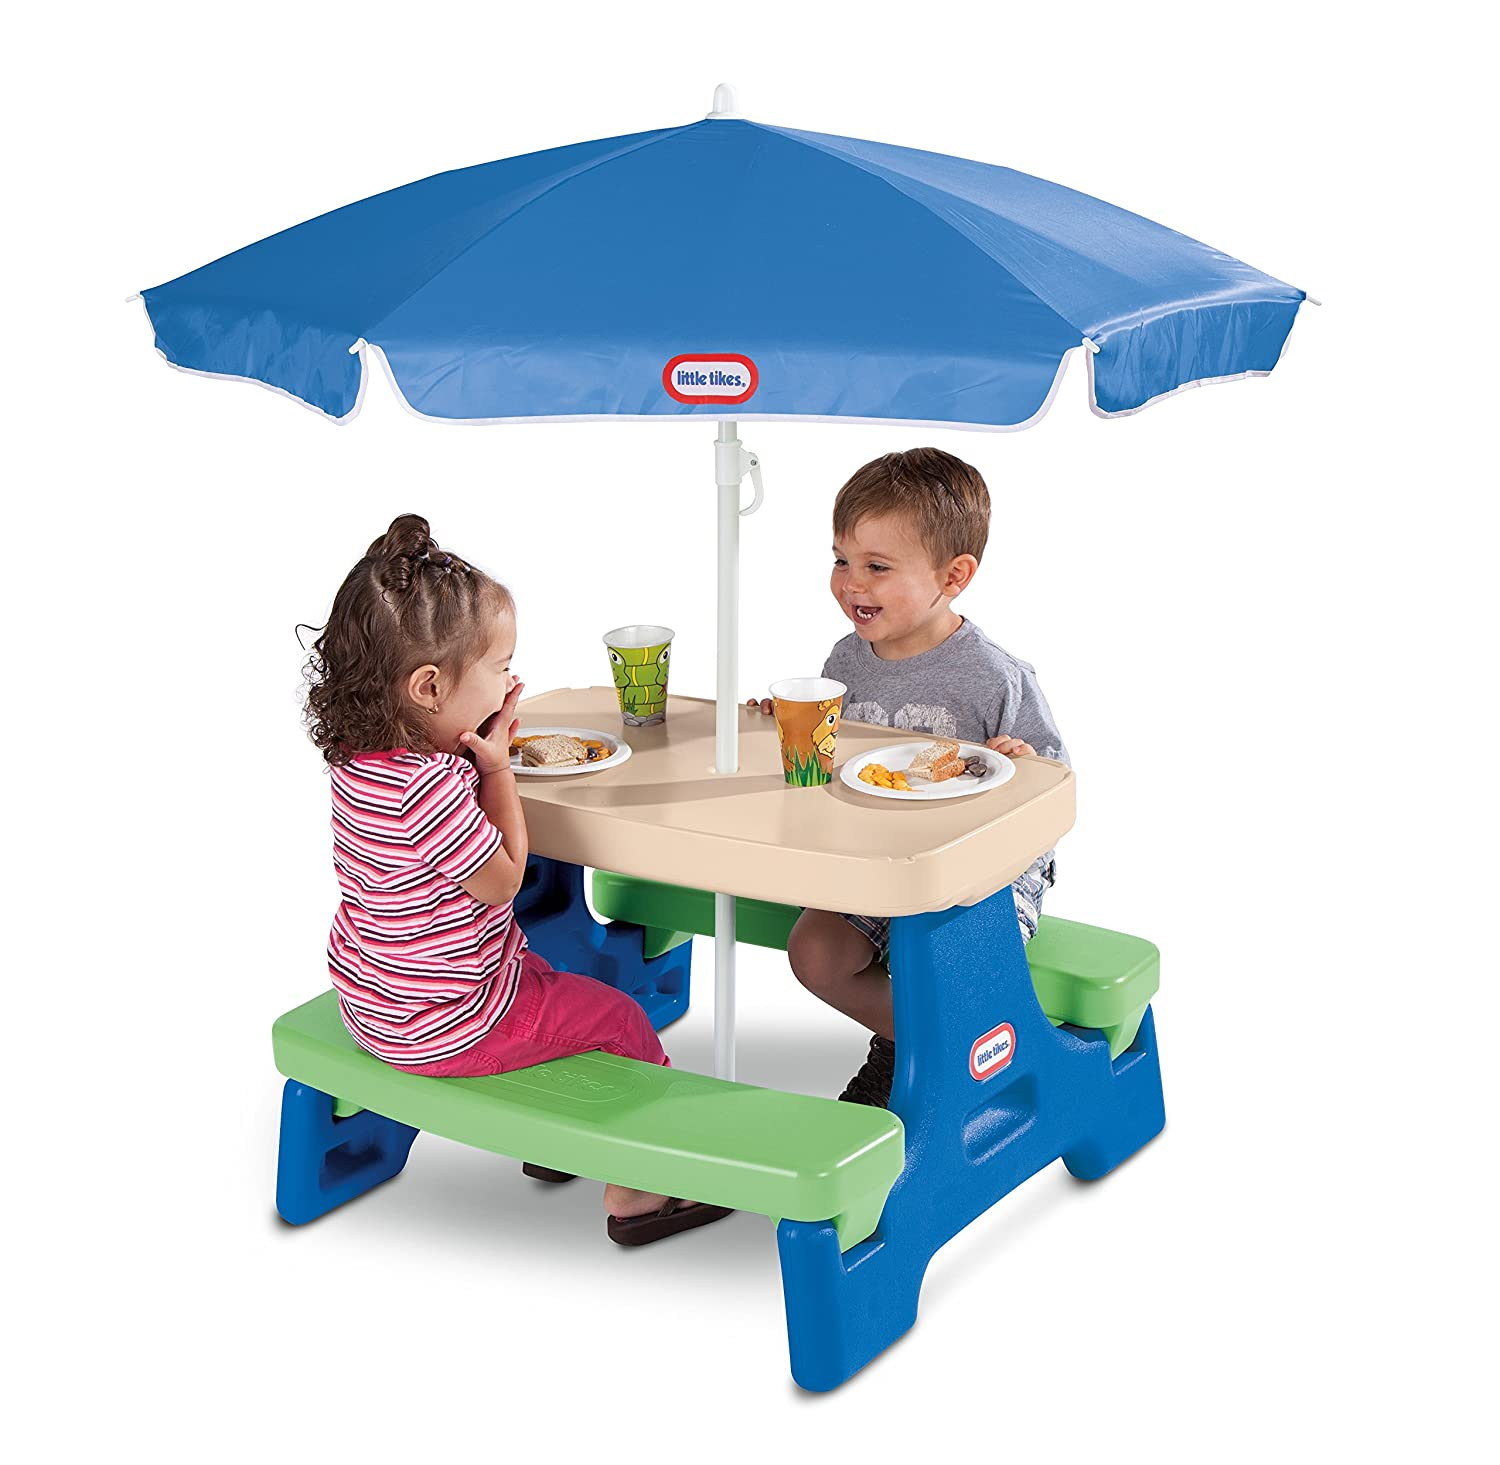 Amazon.com: Little Tikes Easy Store Junior Picnic Table with ...